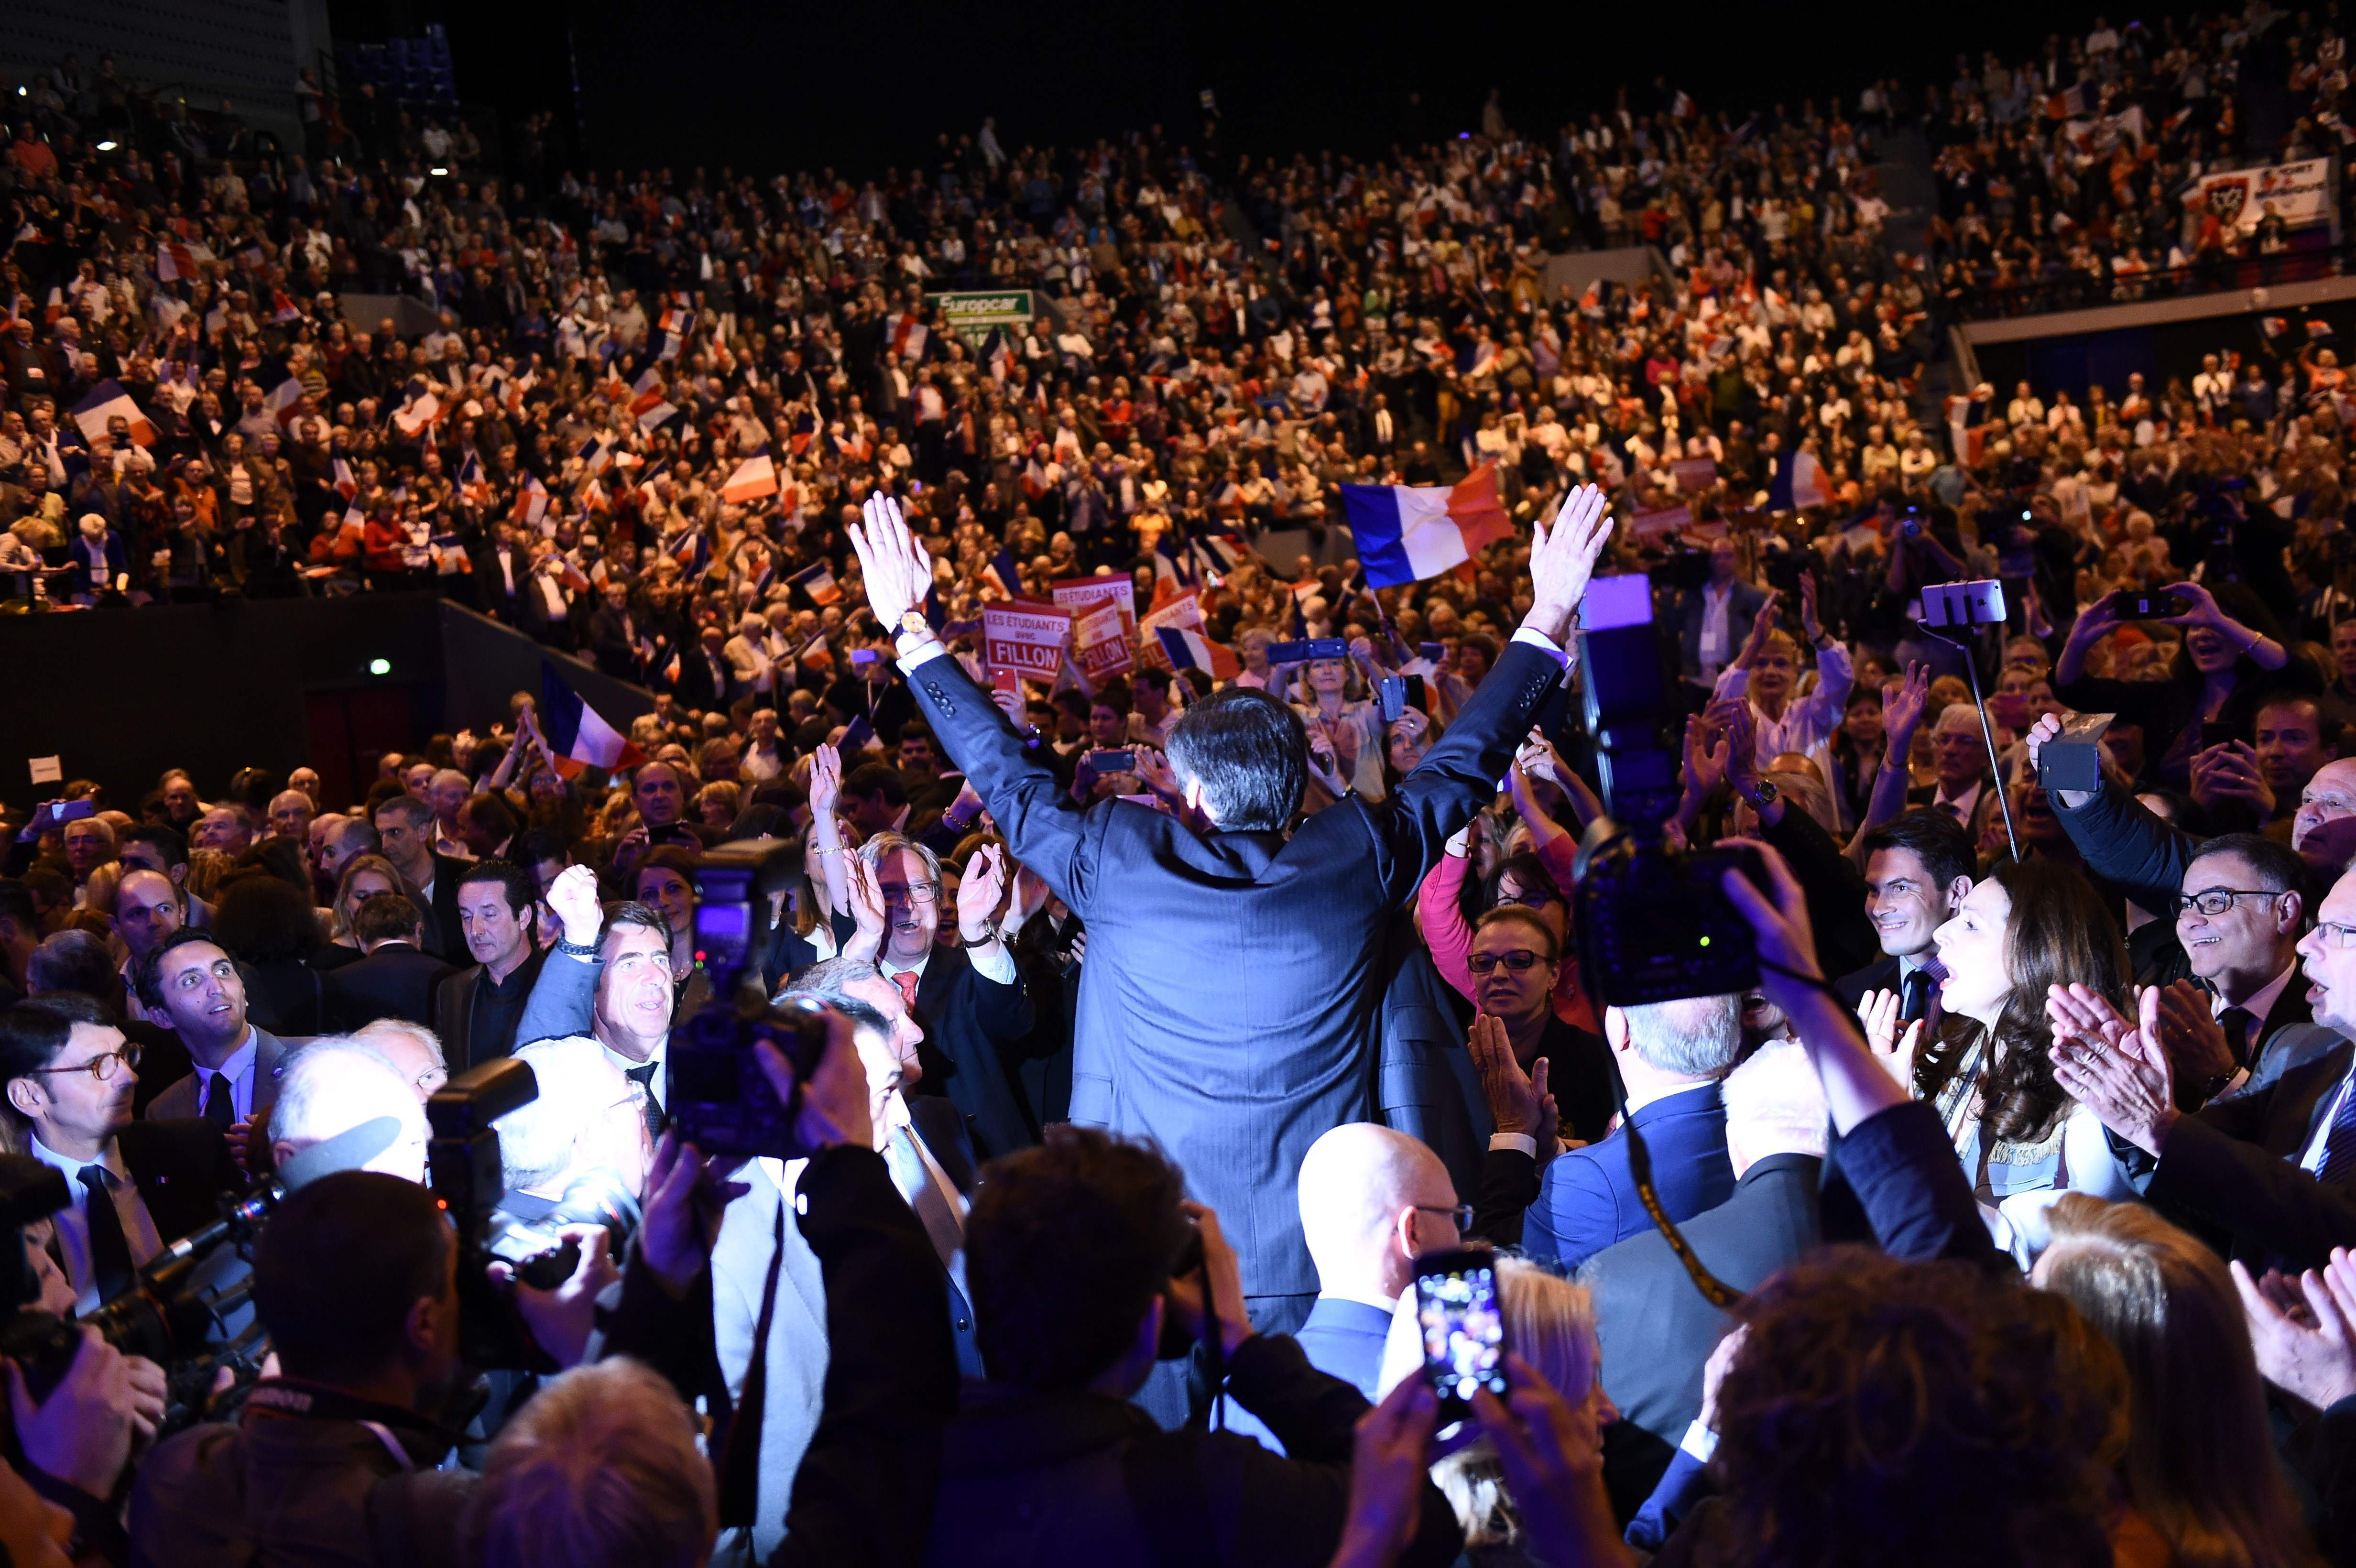 TOPSHOT - French presidential election candidate for the right-wing Les Republicains (LR) party Francois Fillon (back) gestures as he arrives to a campaign meeting on March 31, 2017, in Toulon, southern France. / AFP PHOTO / ANNE-CHRISTINE POUJOULAT / TT / kod 444